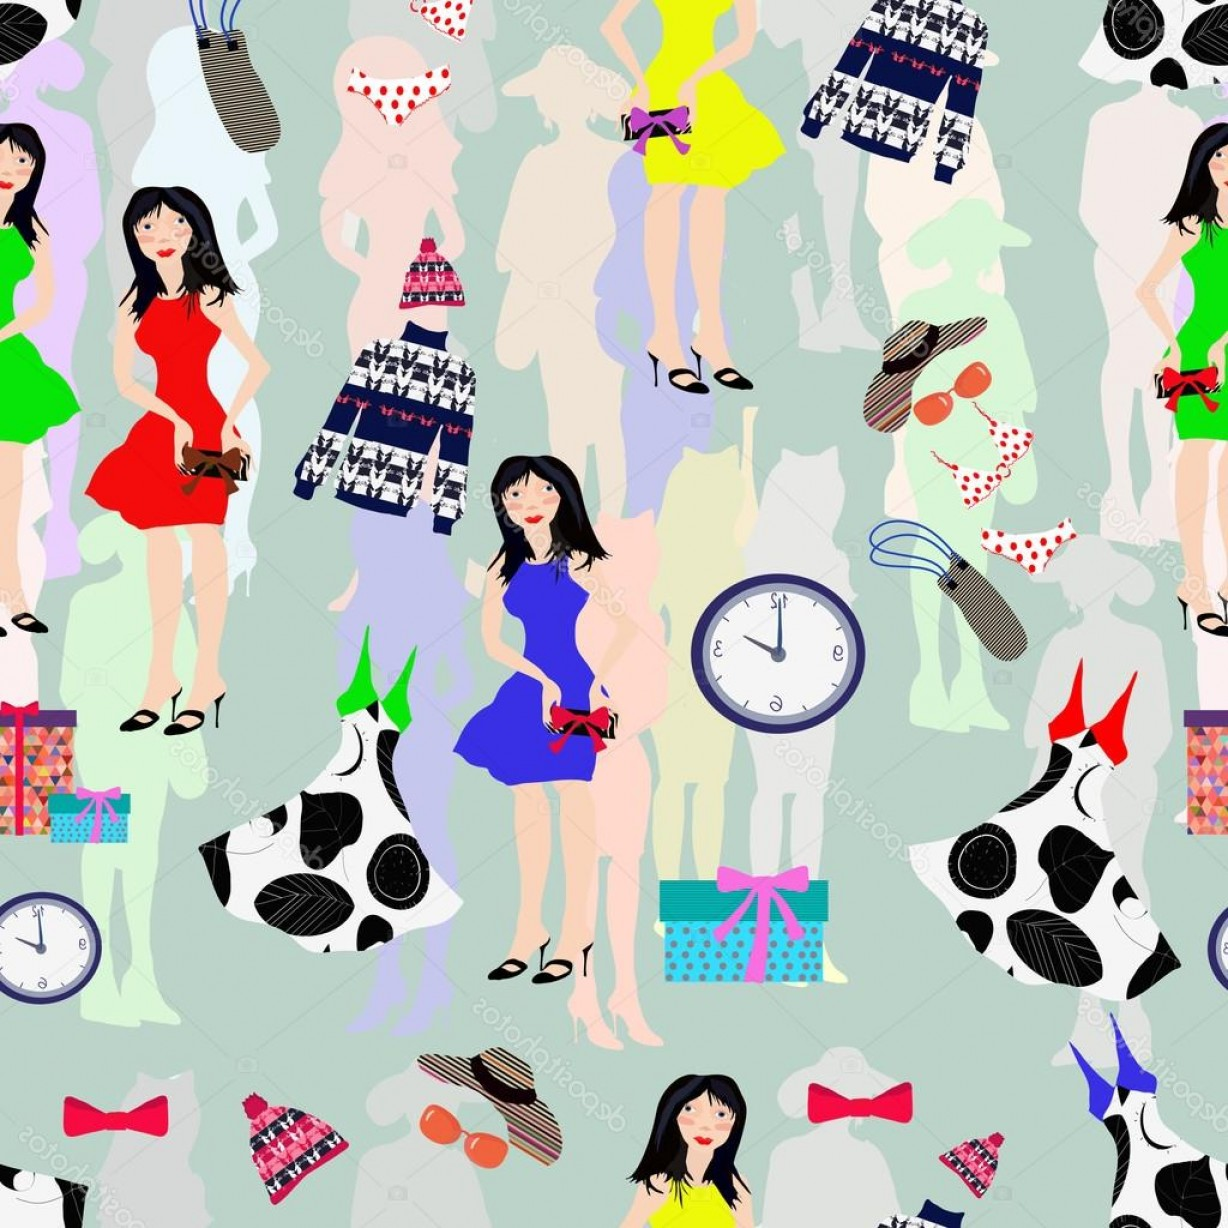 Fashon Shows Vectores: Stock Illustration Overstock And Fashion Show Womens